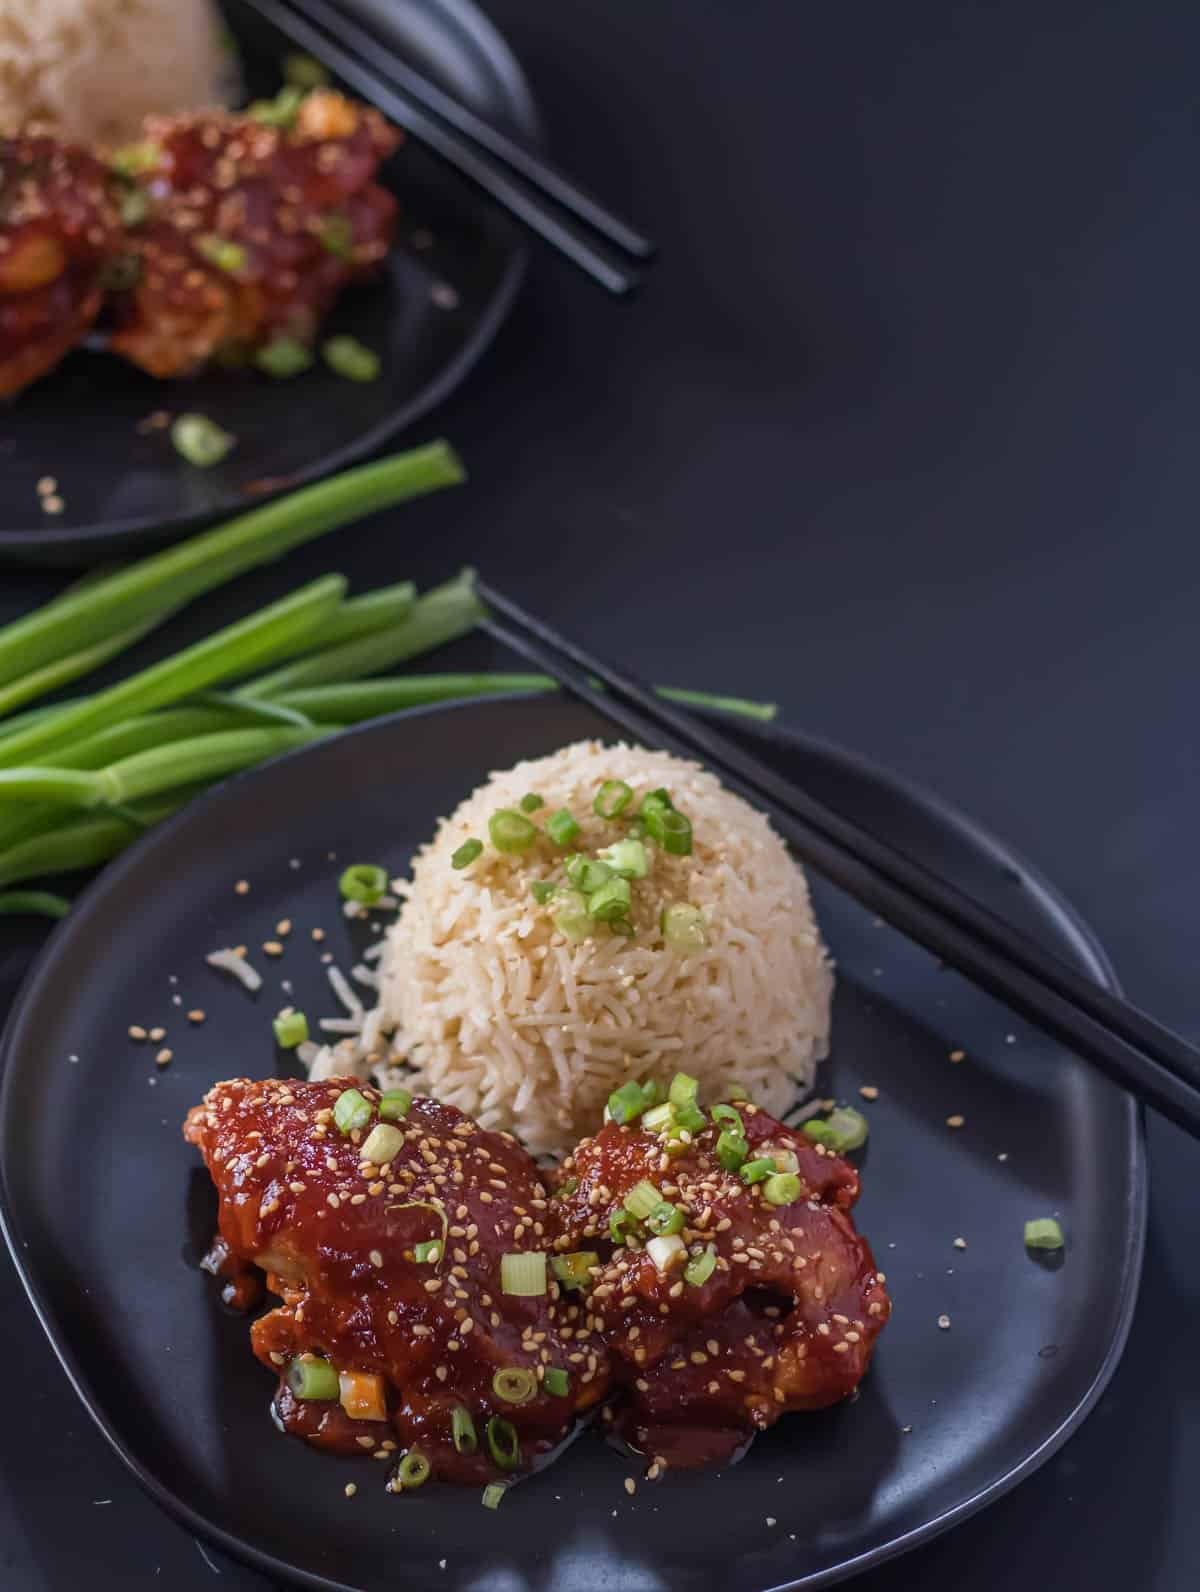 Instant Pot Korean Chicken Thighs on a round black plate with a scoop of rice, garnished with scallions and sesame seeds.